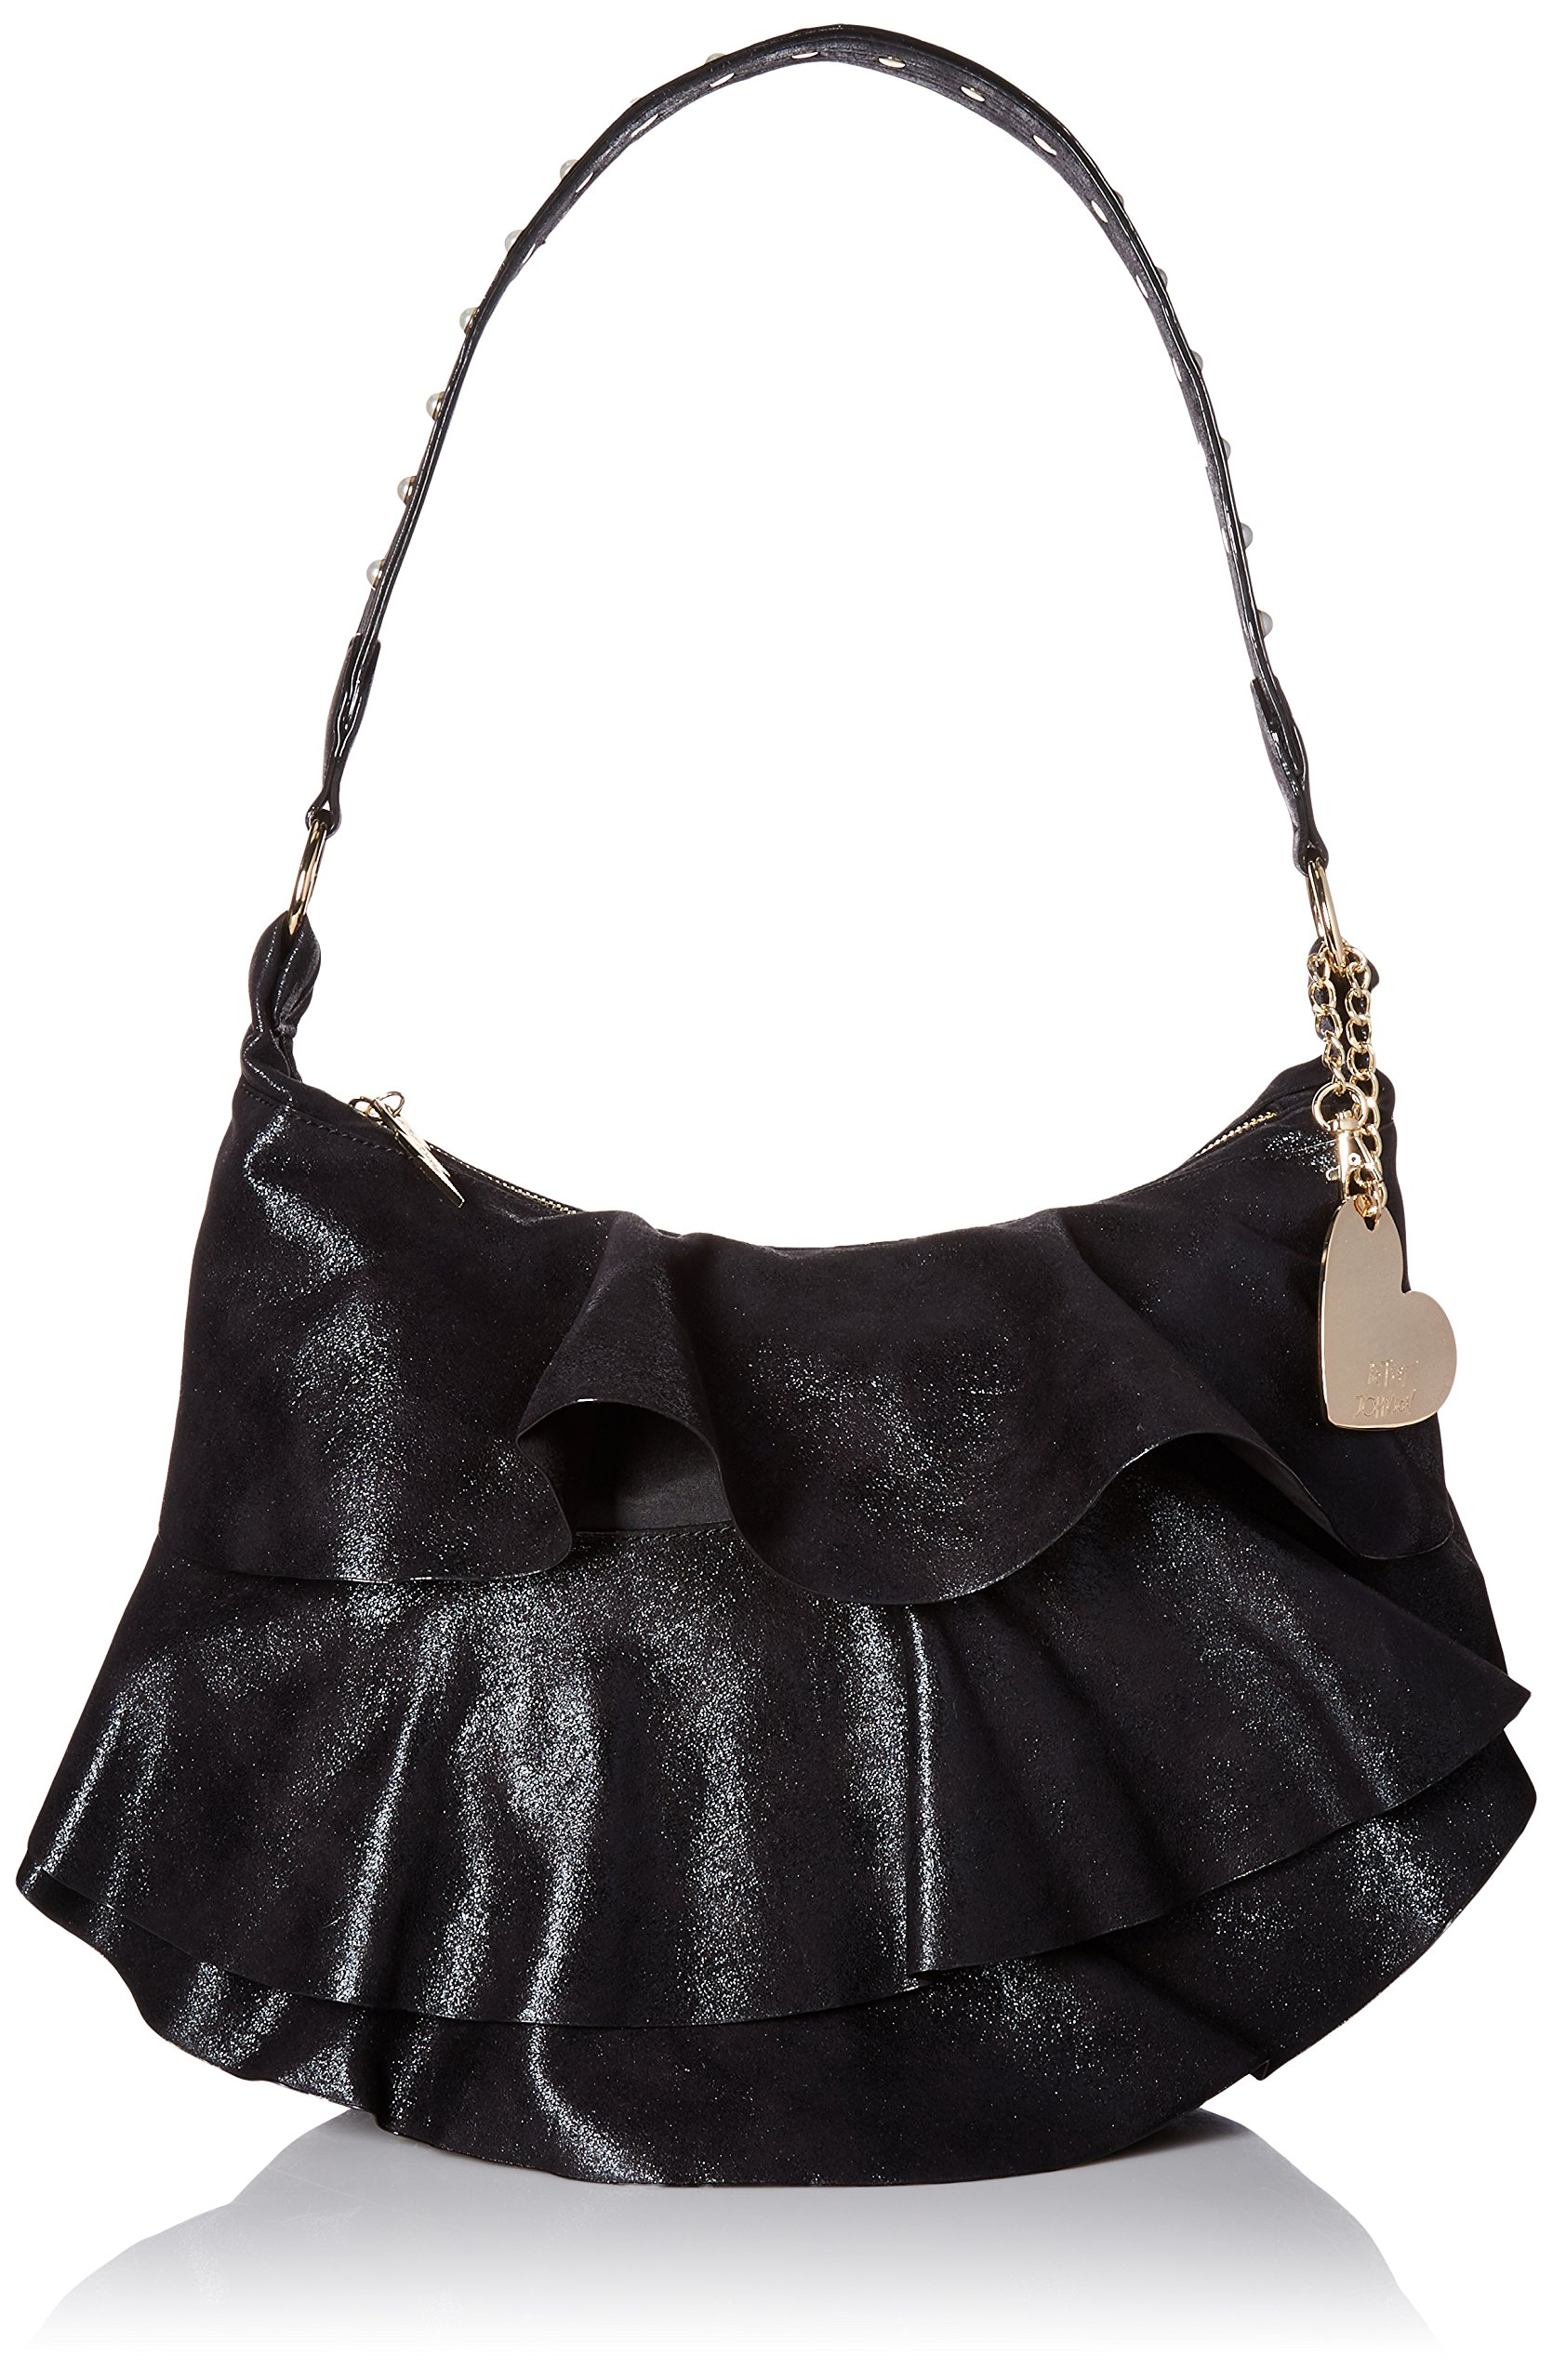 Betsey Johnson Just for the Frill of It Hobo, Black by Betsey Johnson